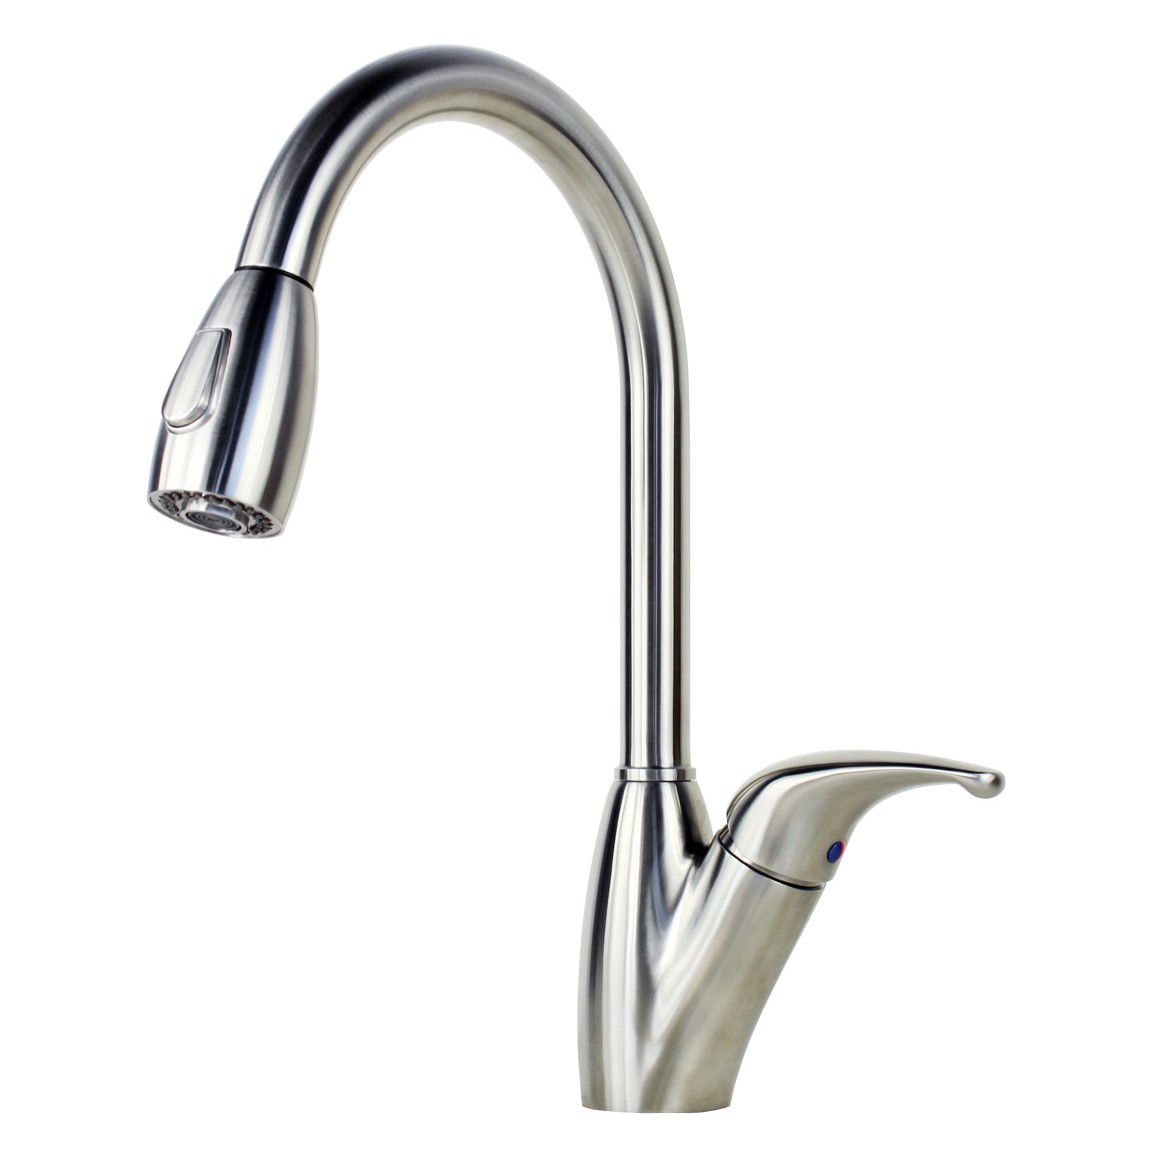 best side stainless sprayer double with faucet steel attractive your sale bathroom decor kitchen design depot home for handle and